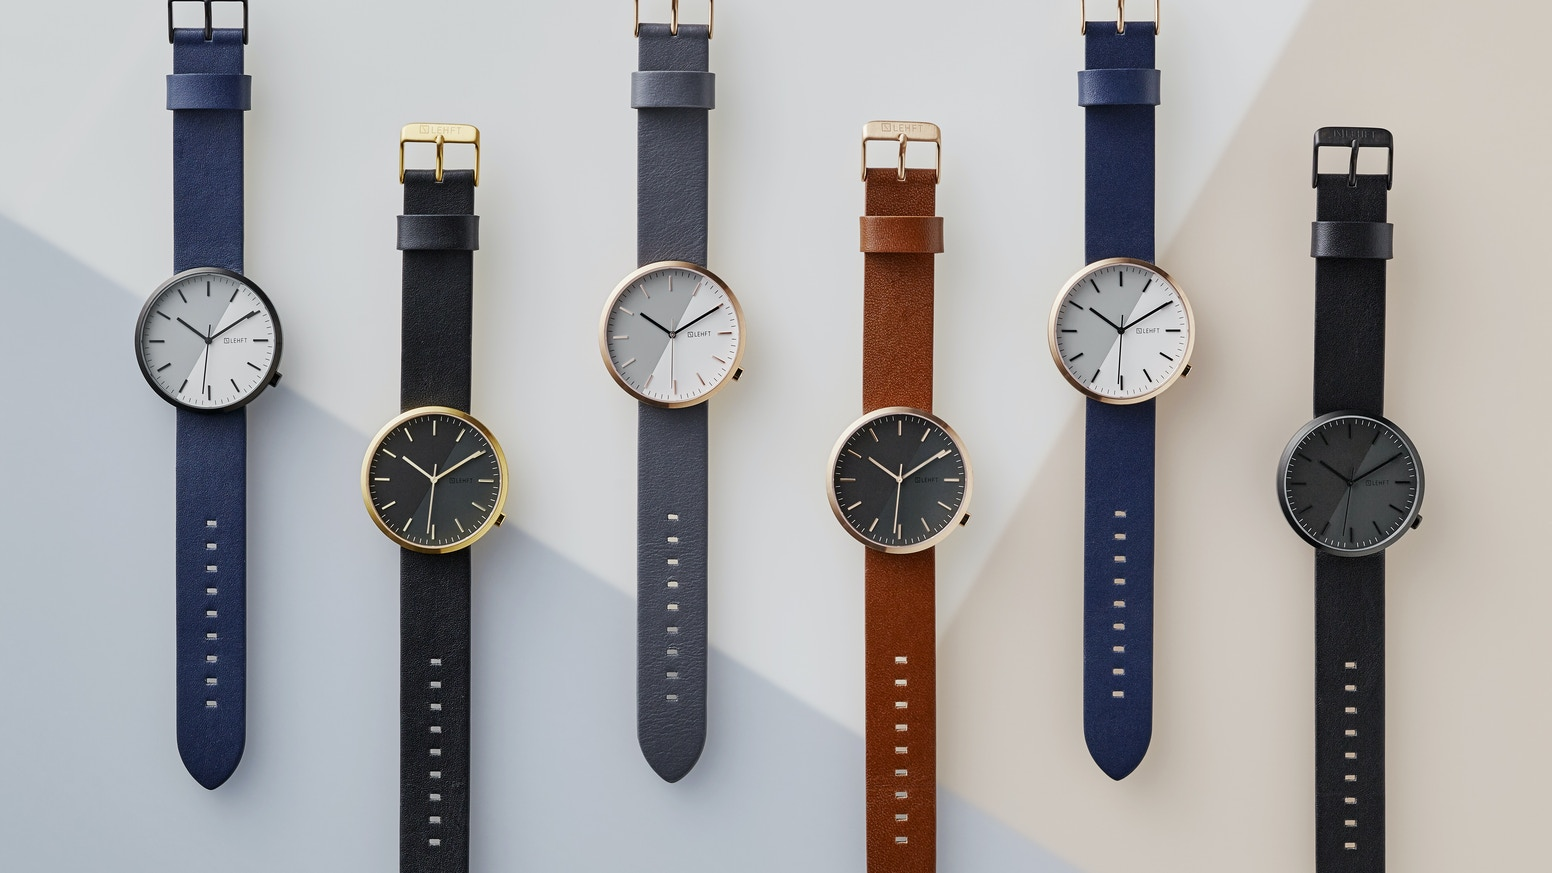 Designed in Melbourne using Swiss made movements to create true minimalism that won't be mistaken for any other.